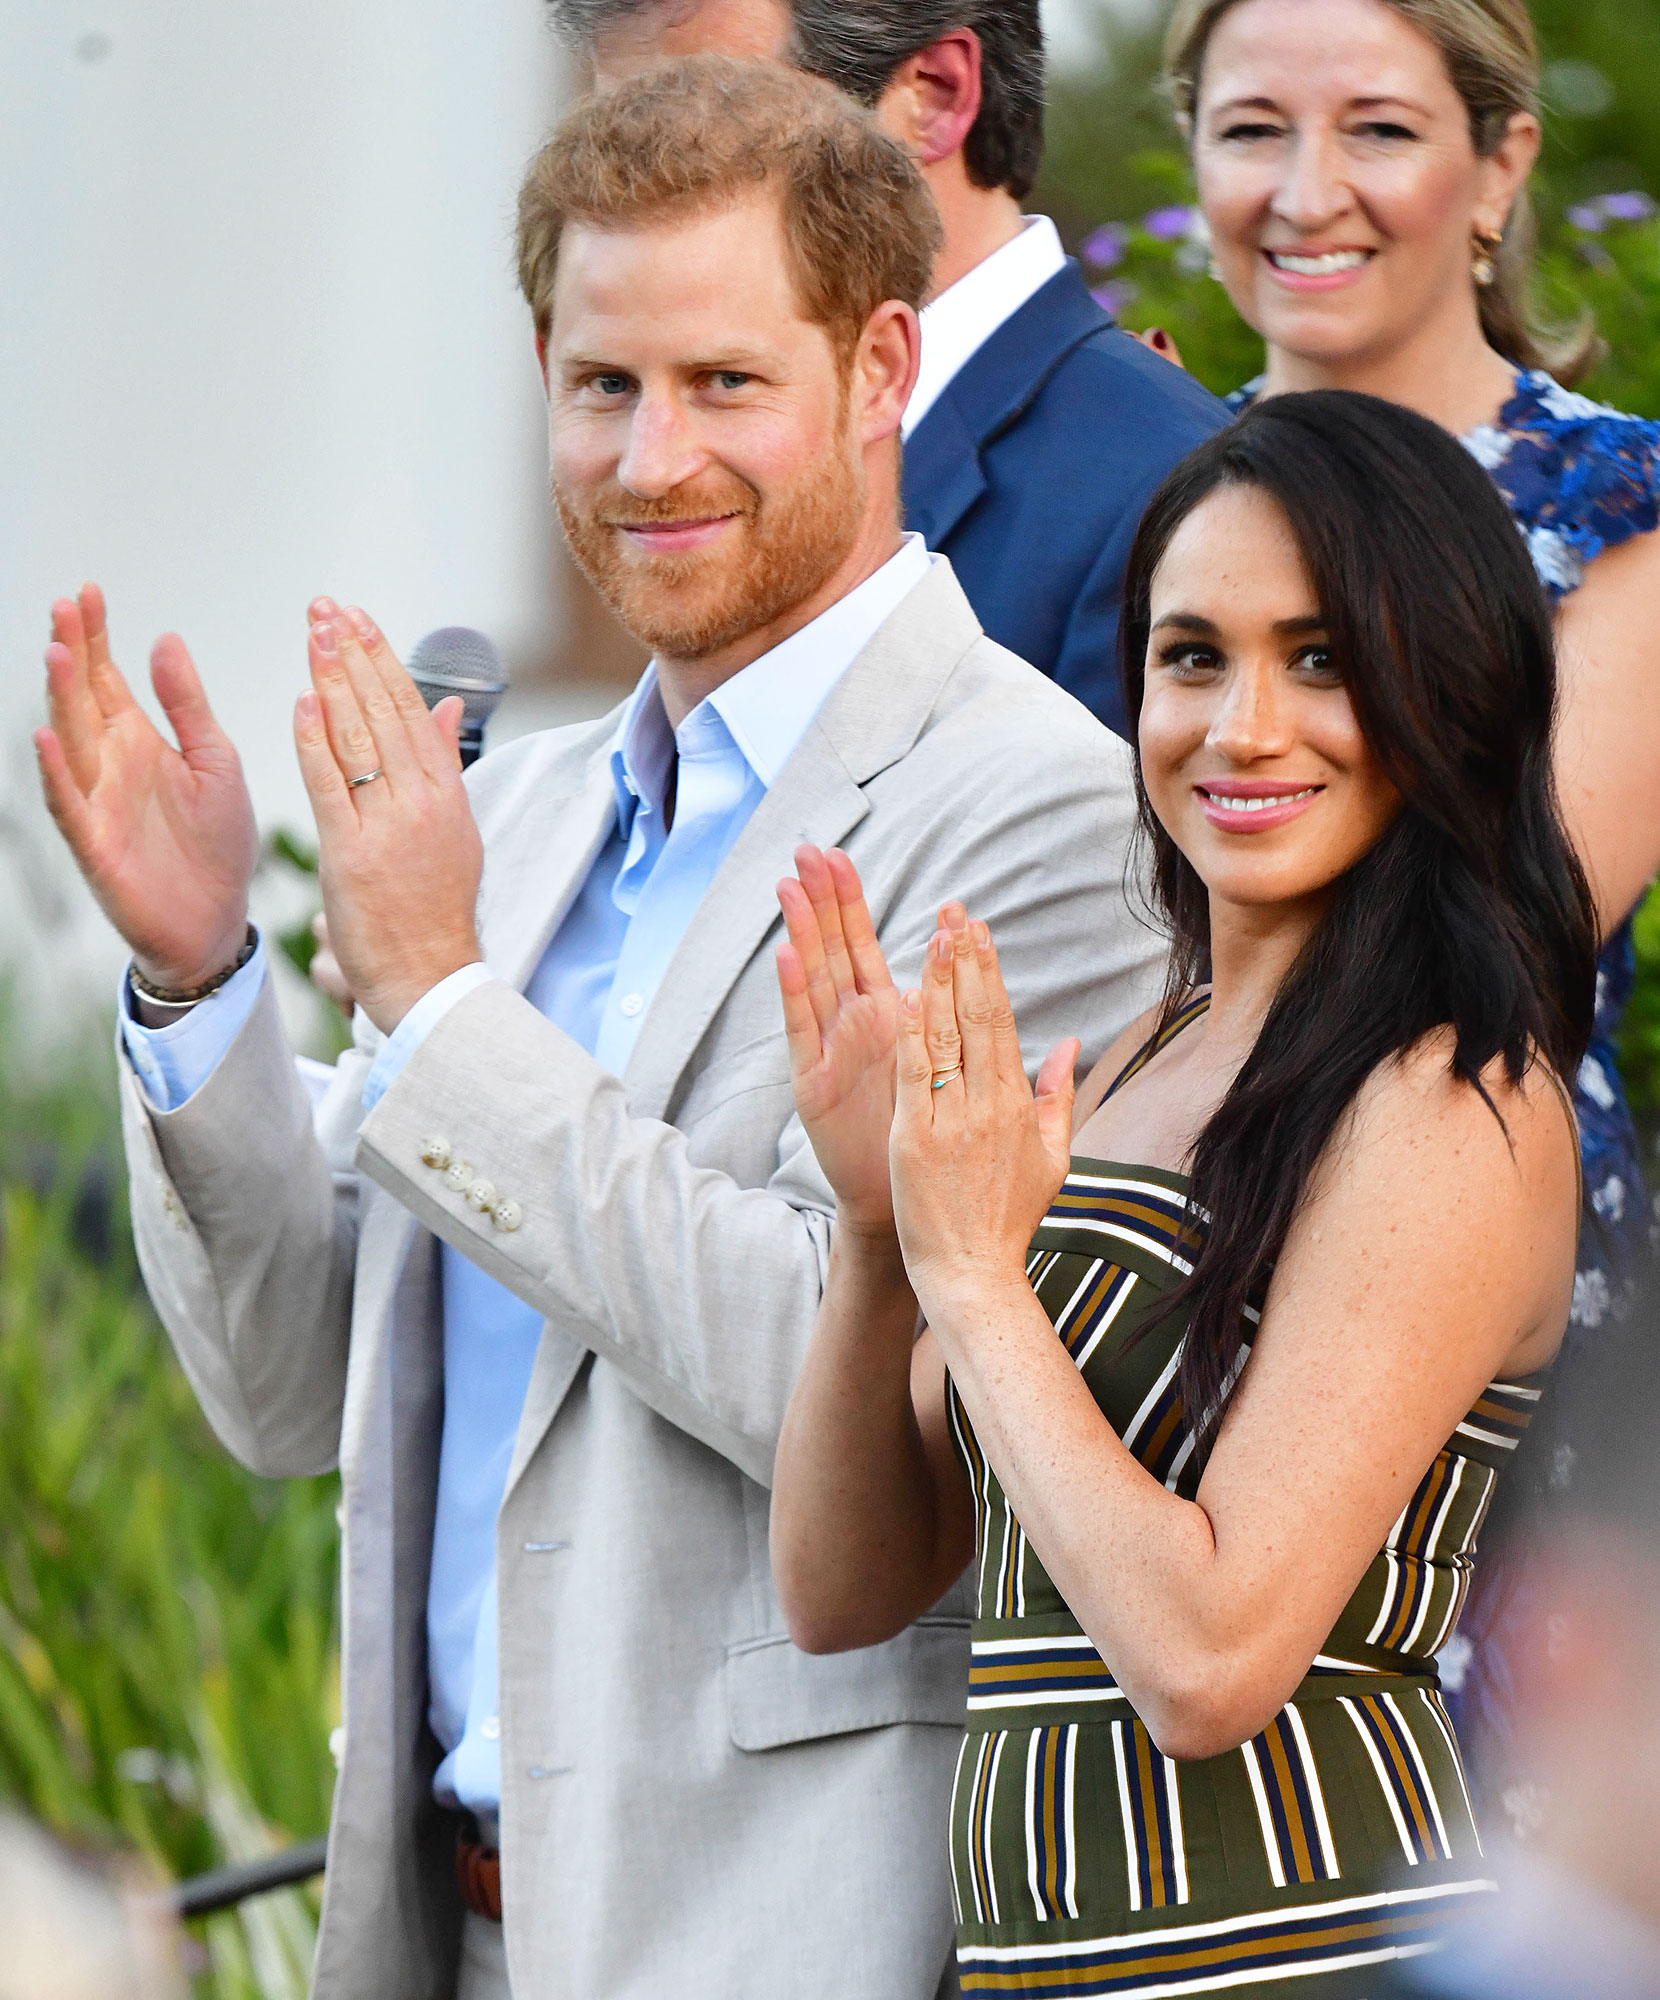 Prince Harry and Meghan Markle Visit South Africa The Crown Cast Weighs in on Prince Harry and Meghan Markles Royal Exit at the SAG Awards 2020